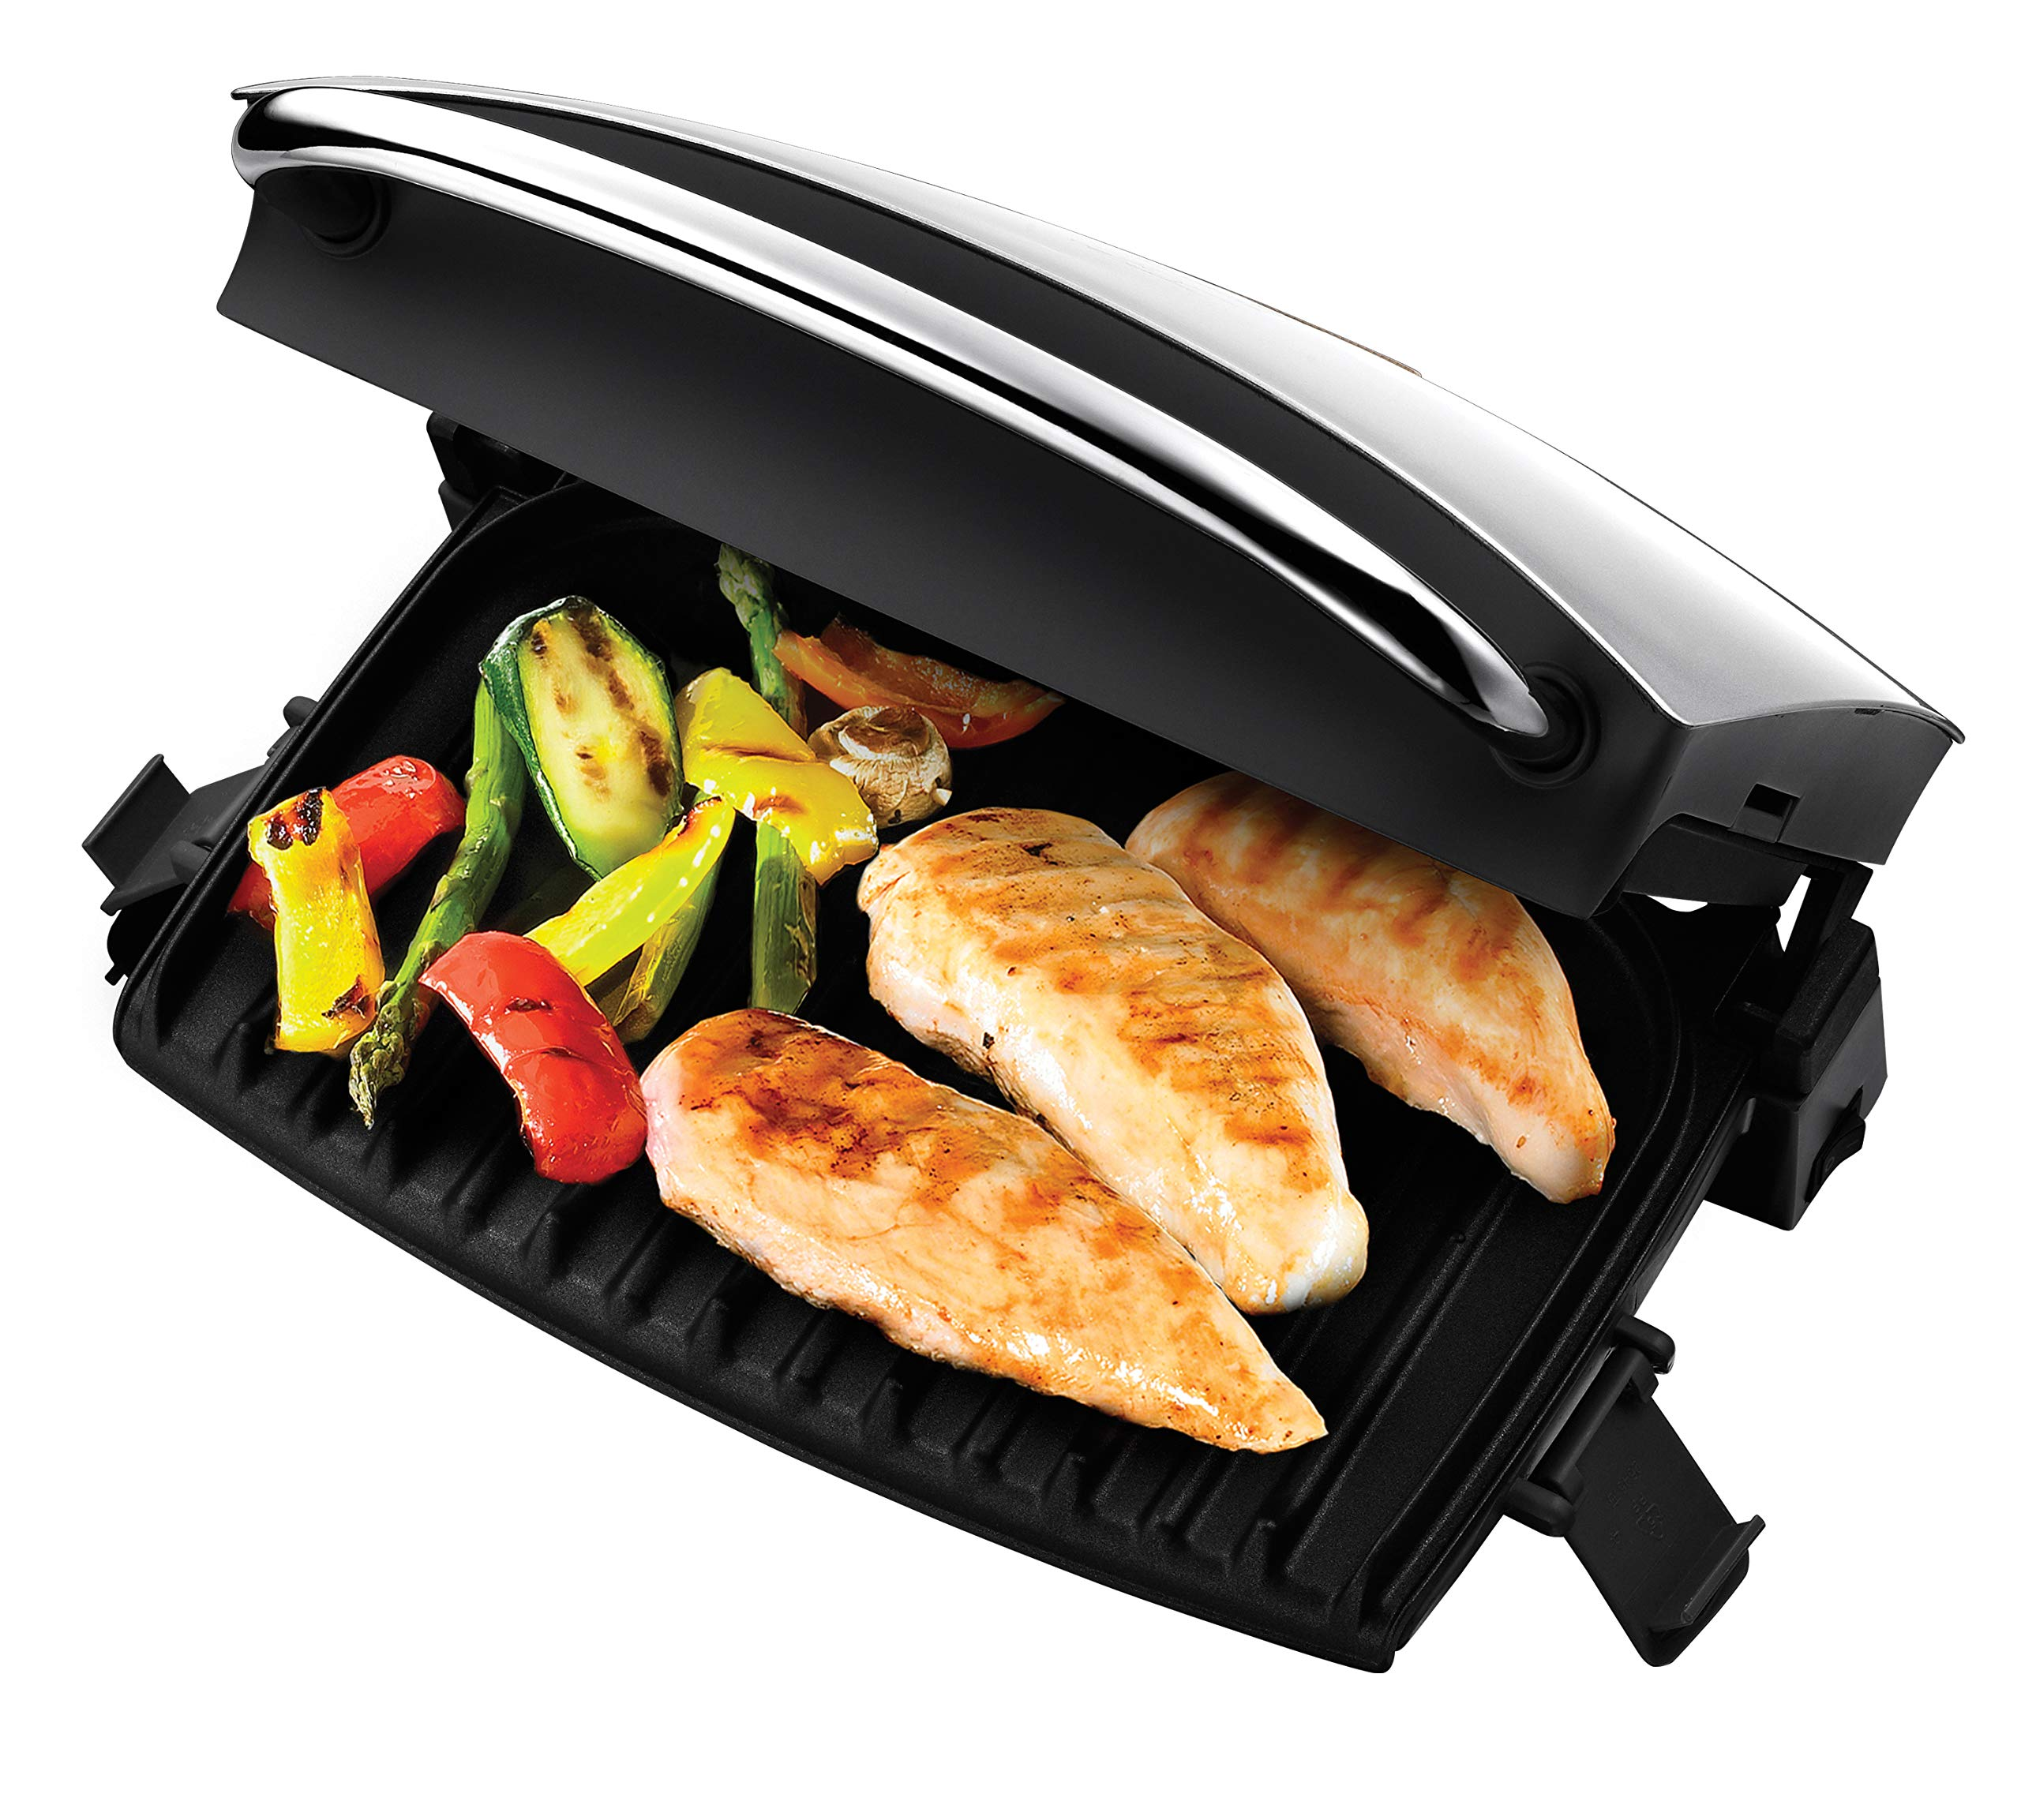 Silver by George Foreman George Foreman 22160 Advanced Five Portion Grill and Melt